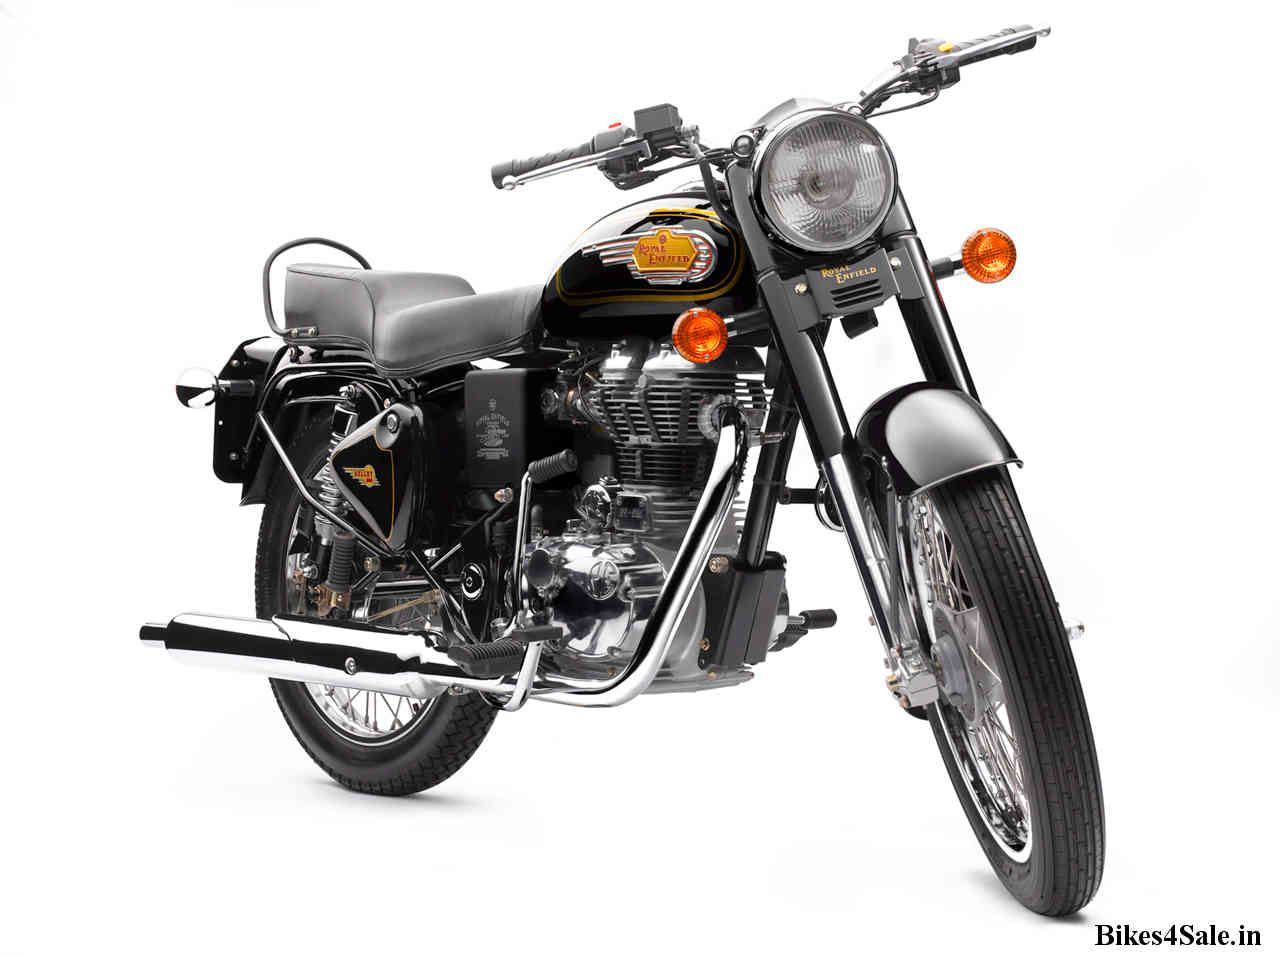 Royal Enfield Bullet 500 Army 1992 images #123394